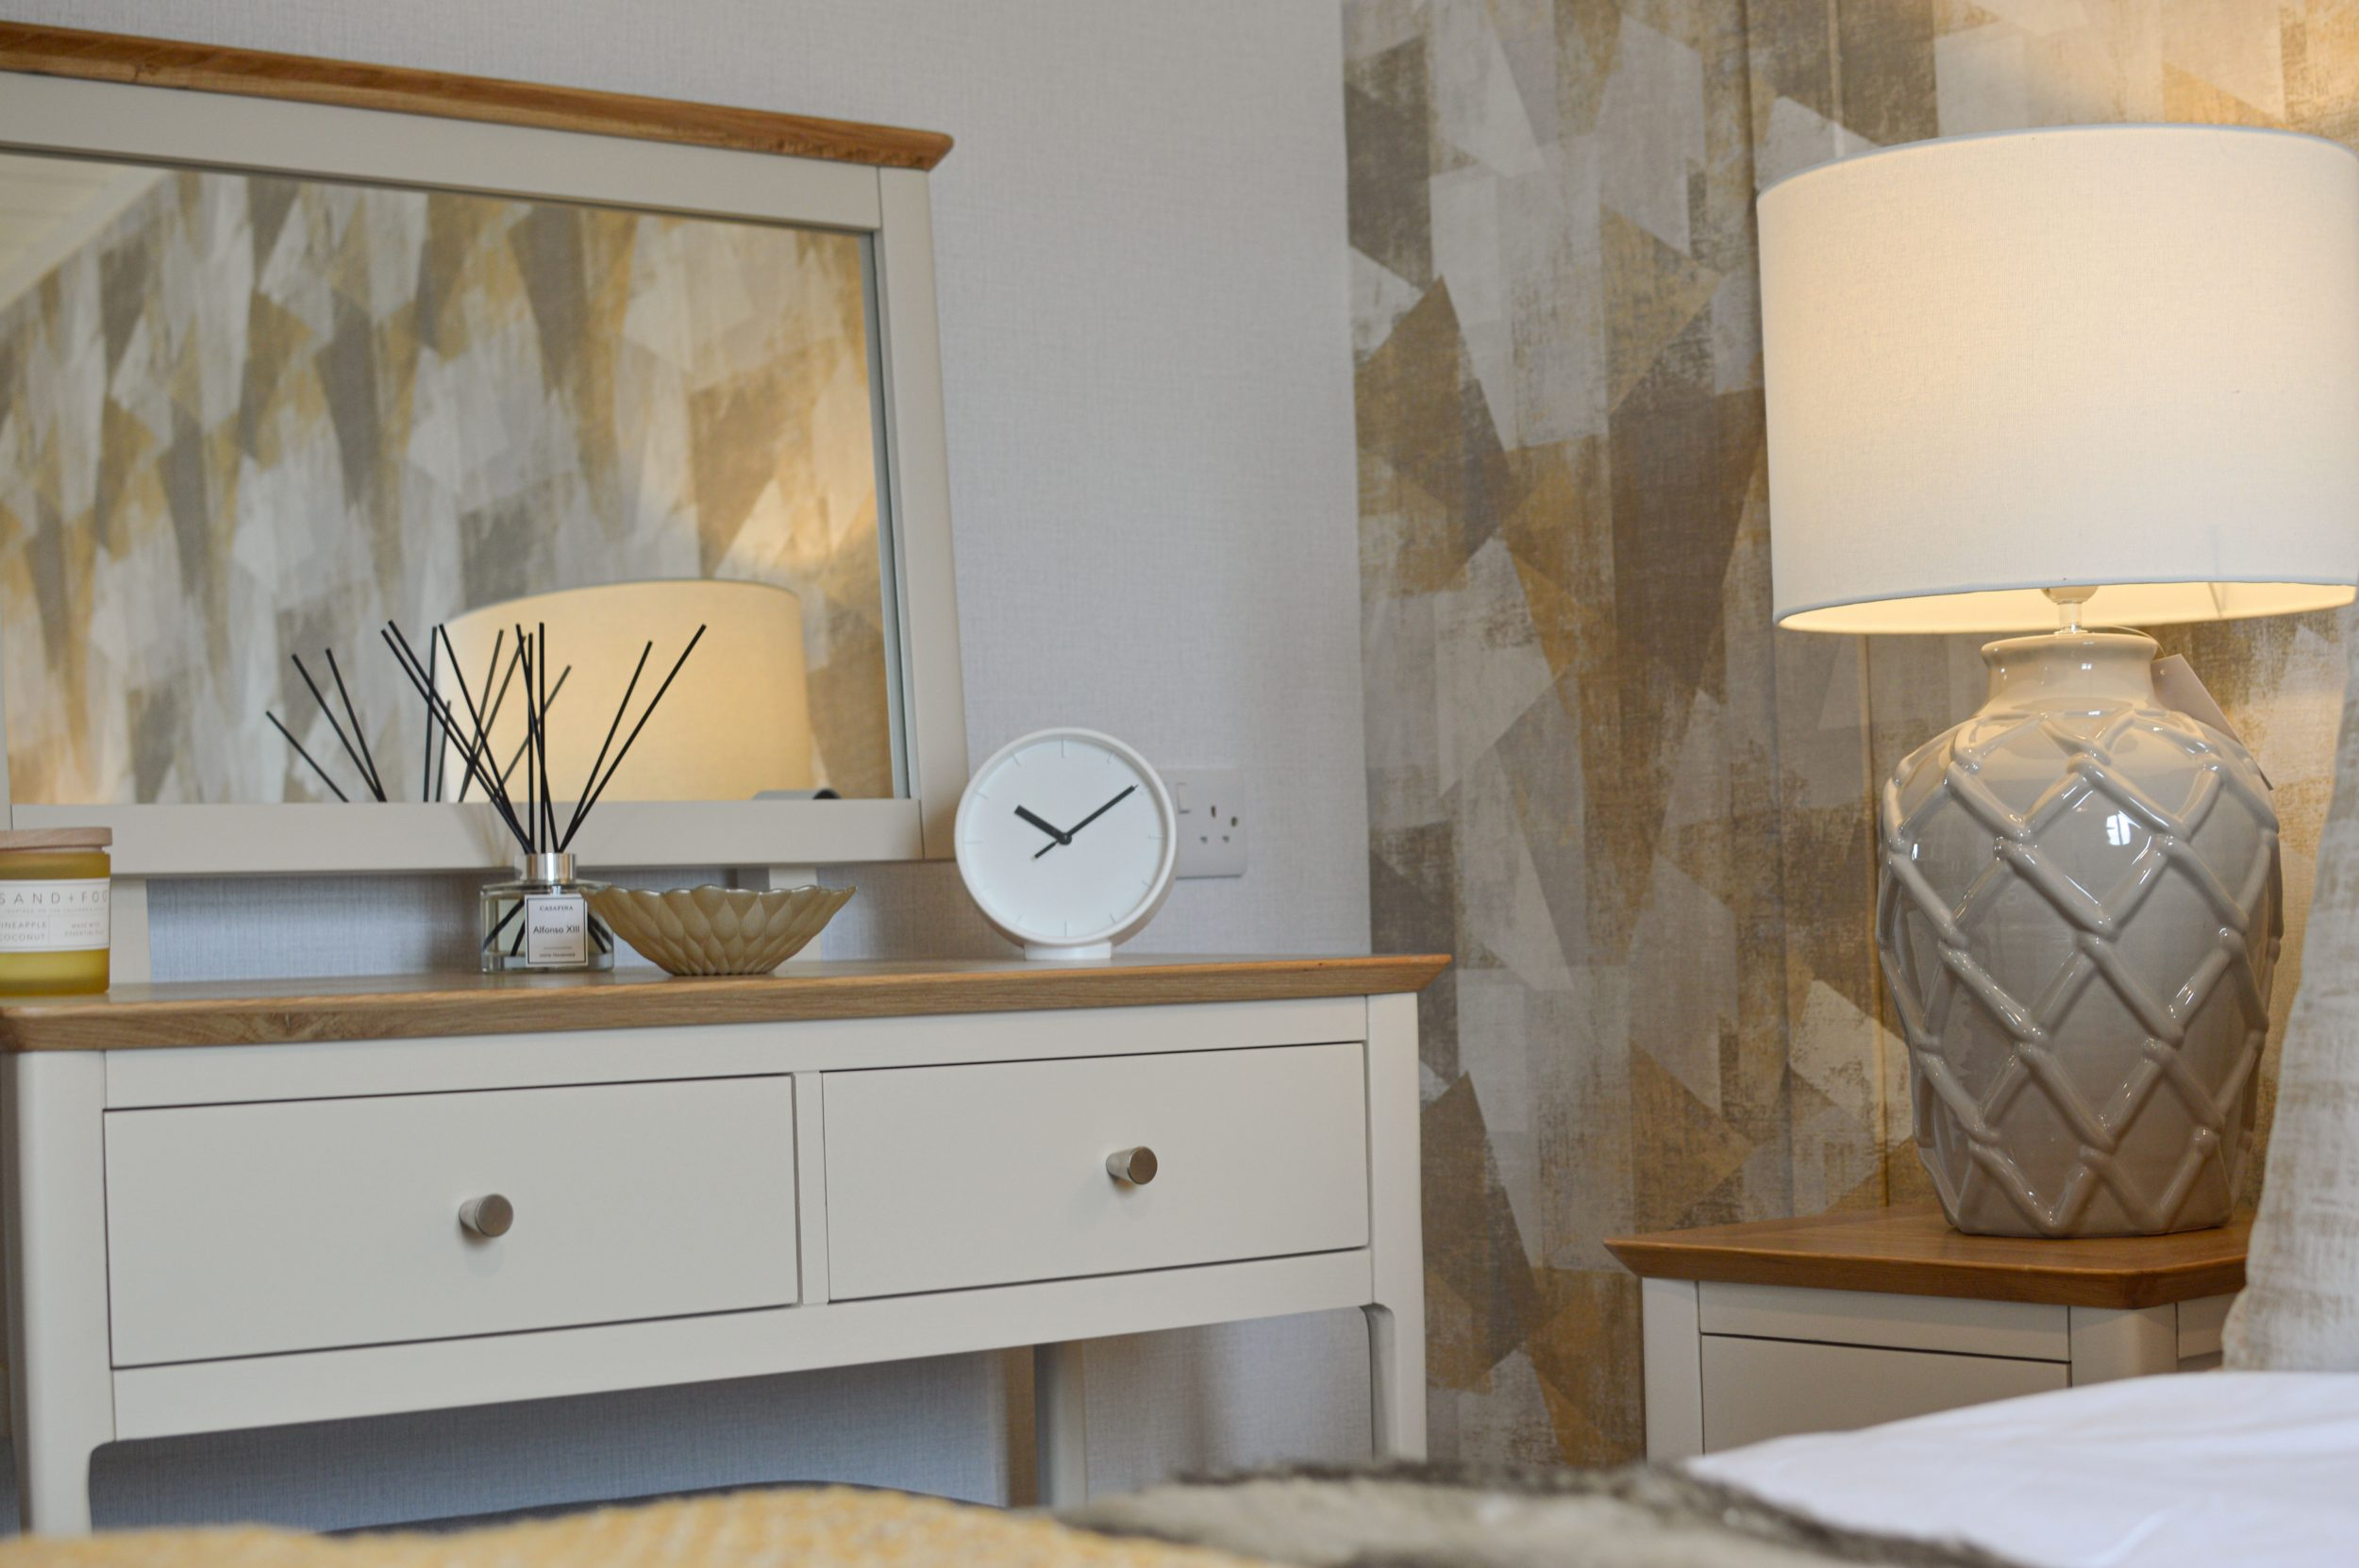 The Oslo Lodge - Bedroom dressing table